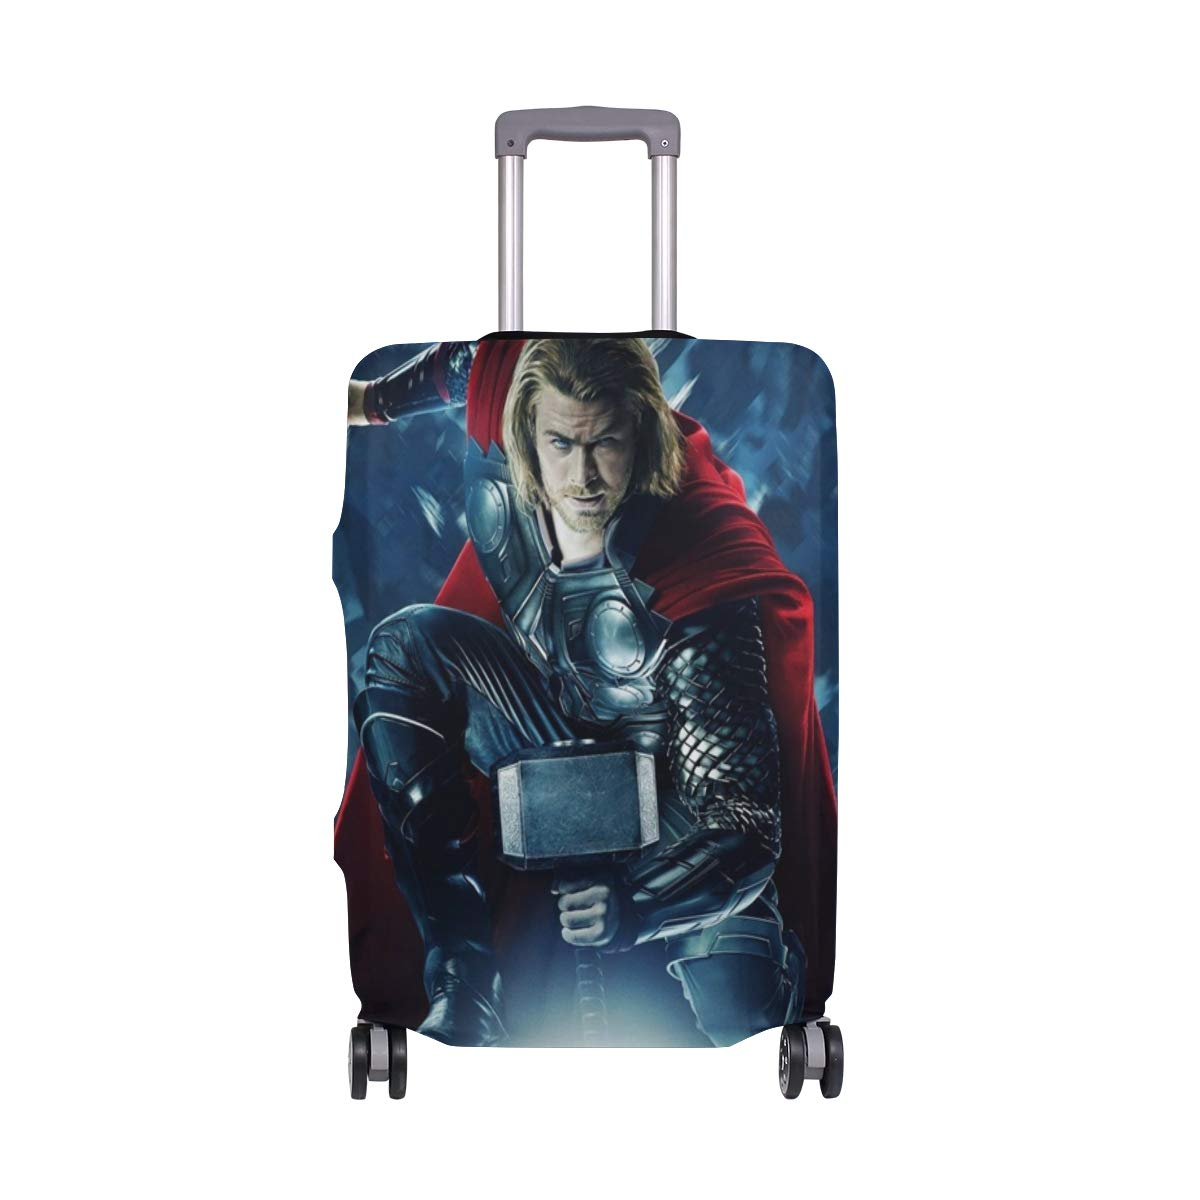 Thor Superhero suitcase cover elastic suitcase cover zipper luggage case removable cleaning suitable for 29-32 trunk cover